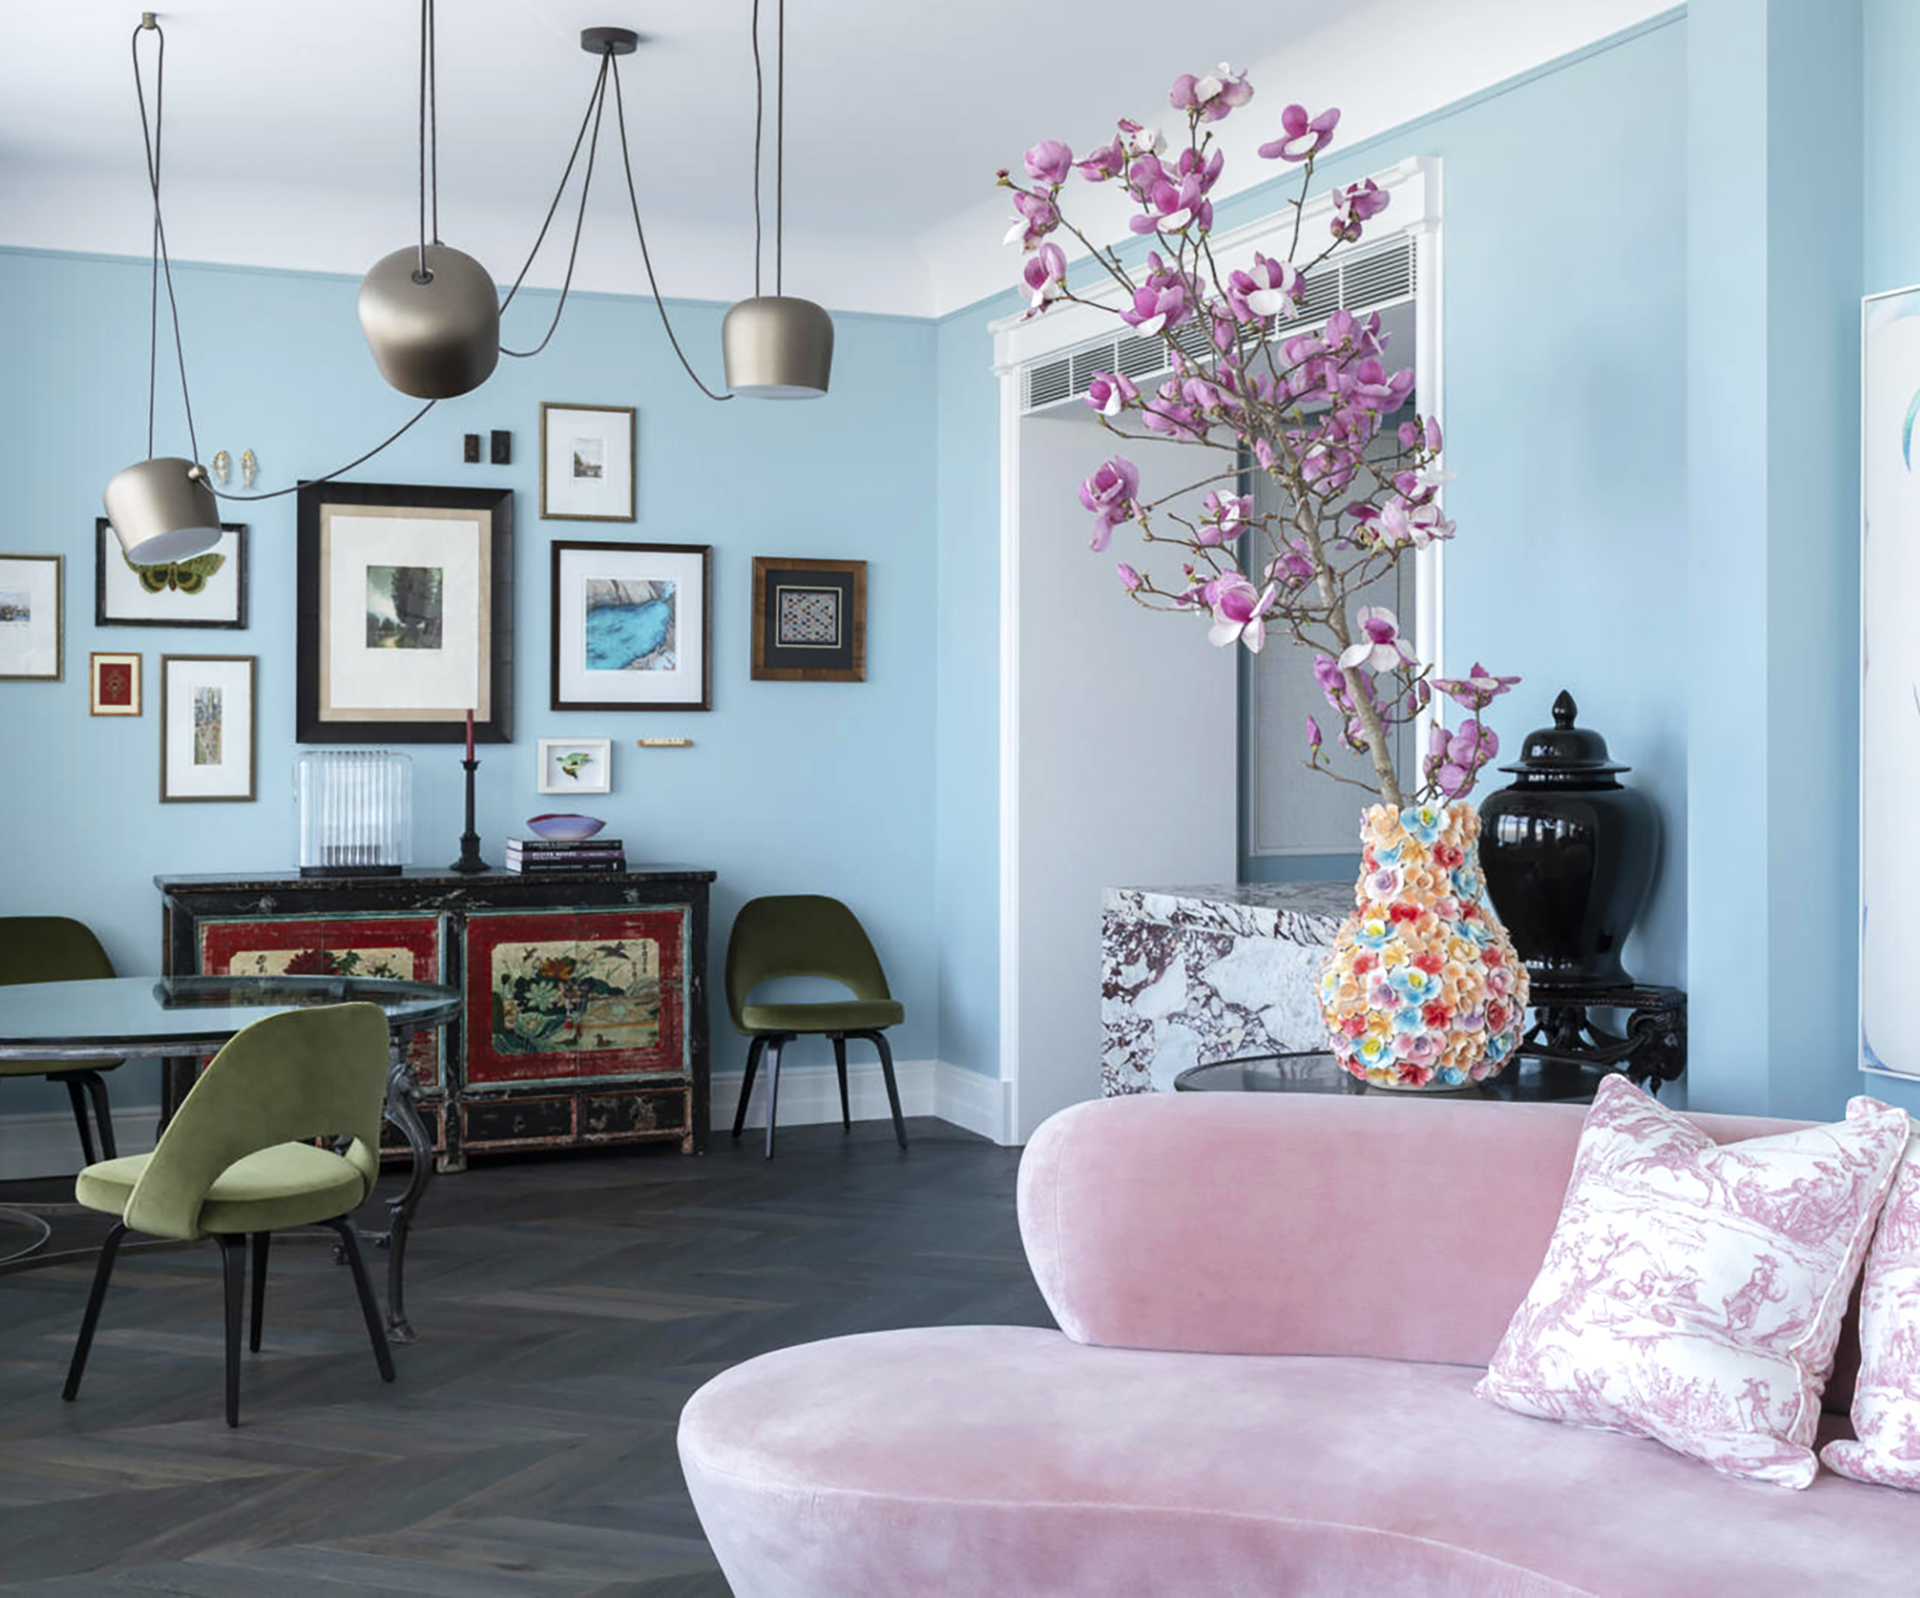 inner-city apartment with a pastel colour palette